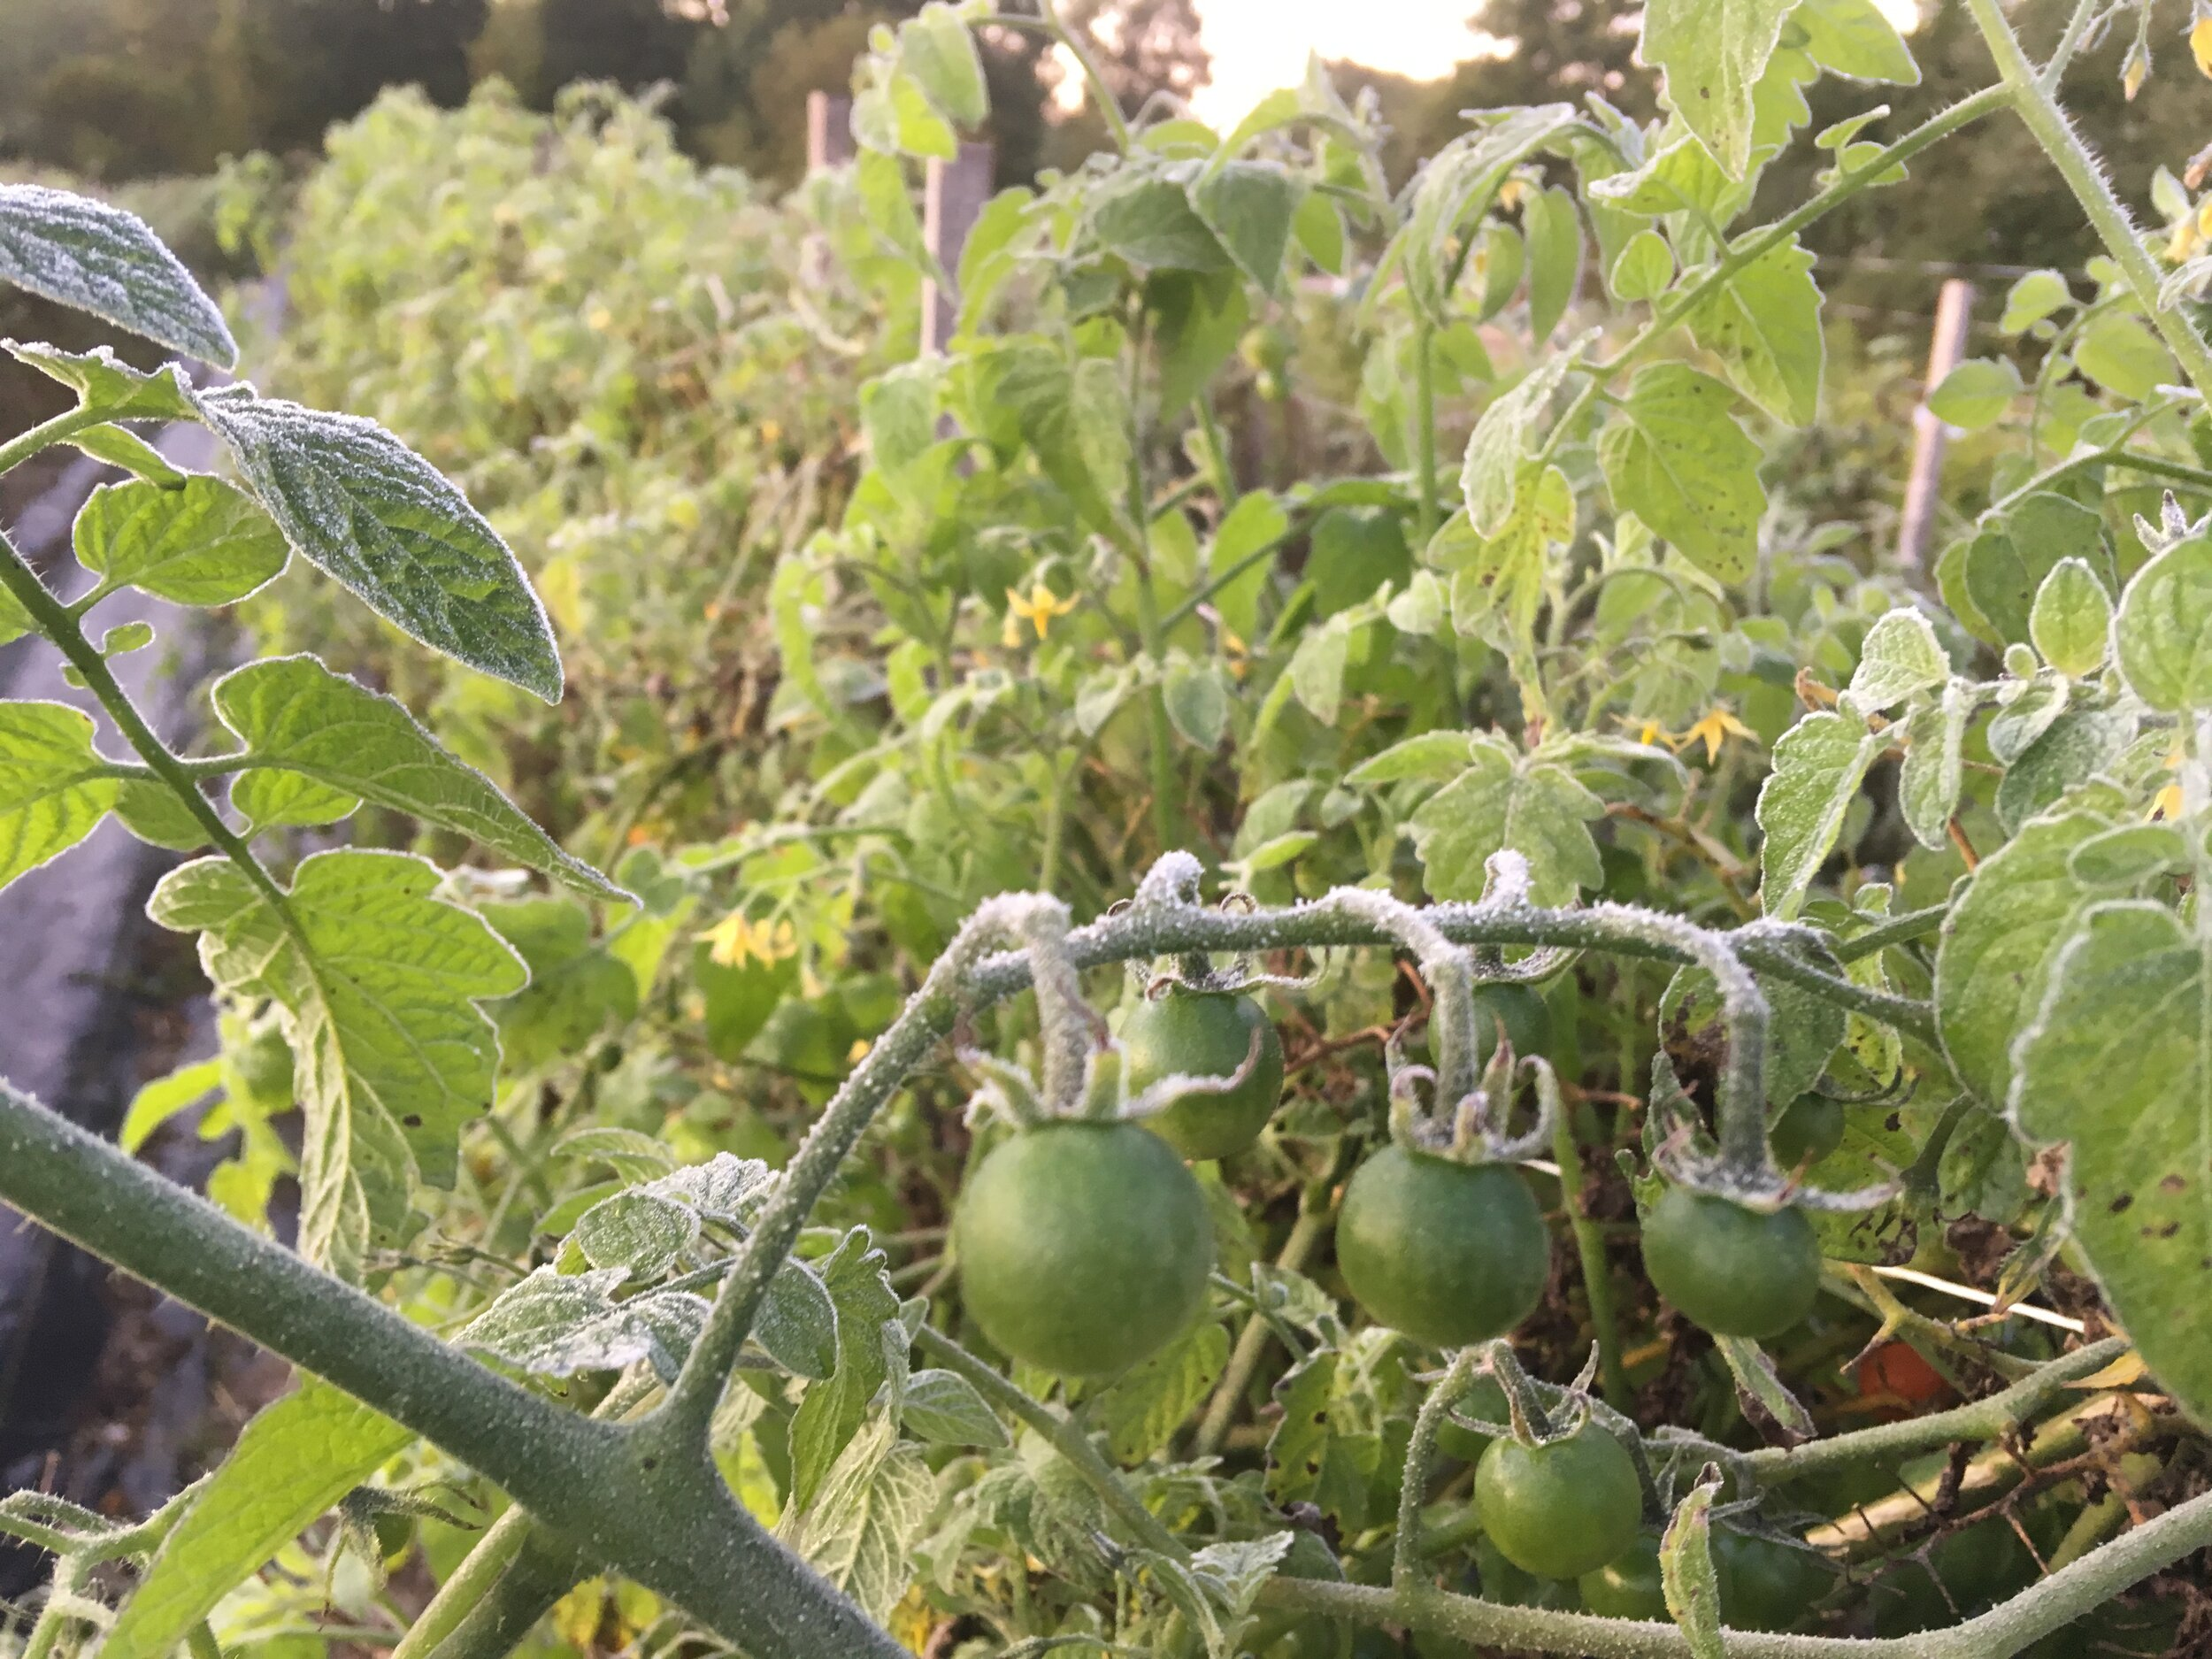 Frost in the cherry tomatoes on Saturday morning.